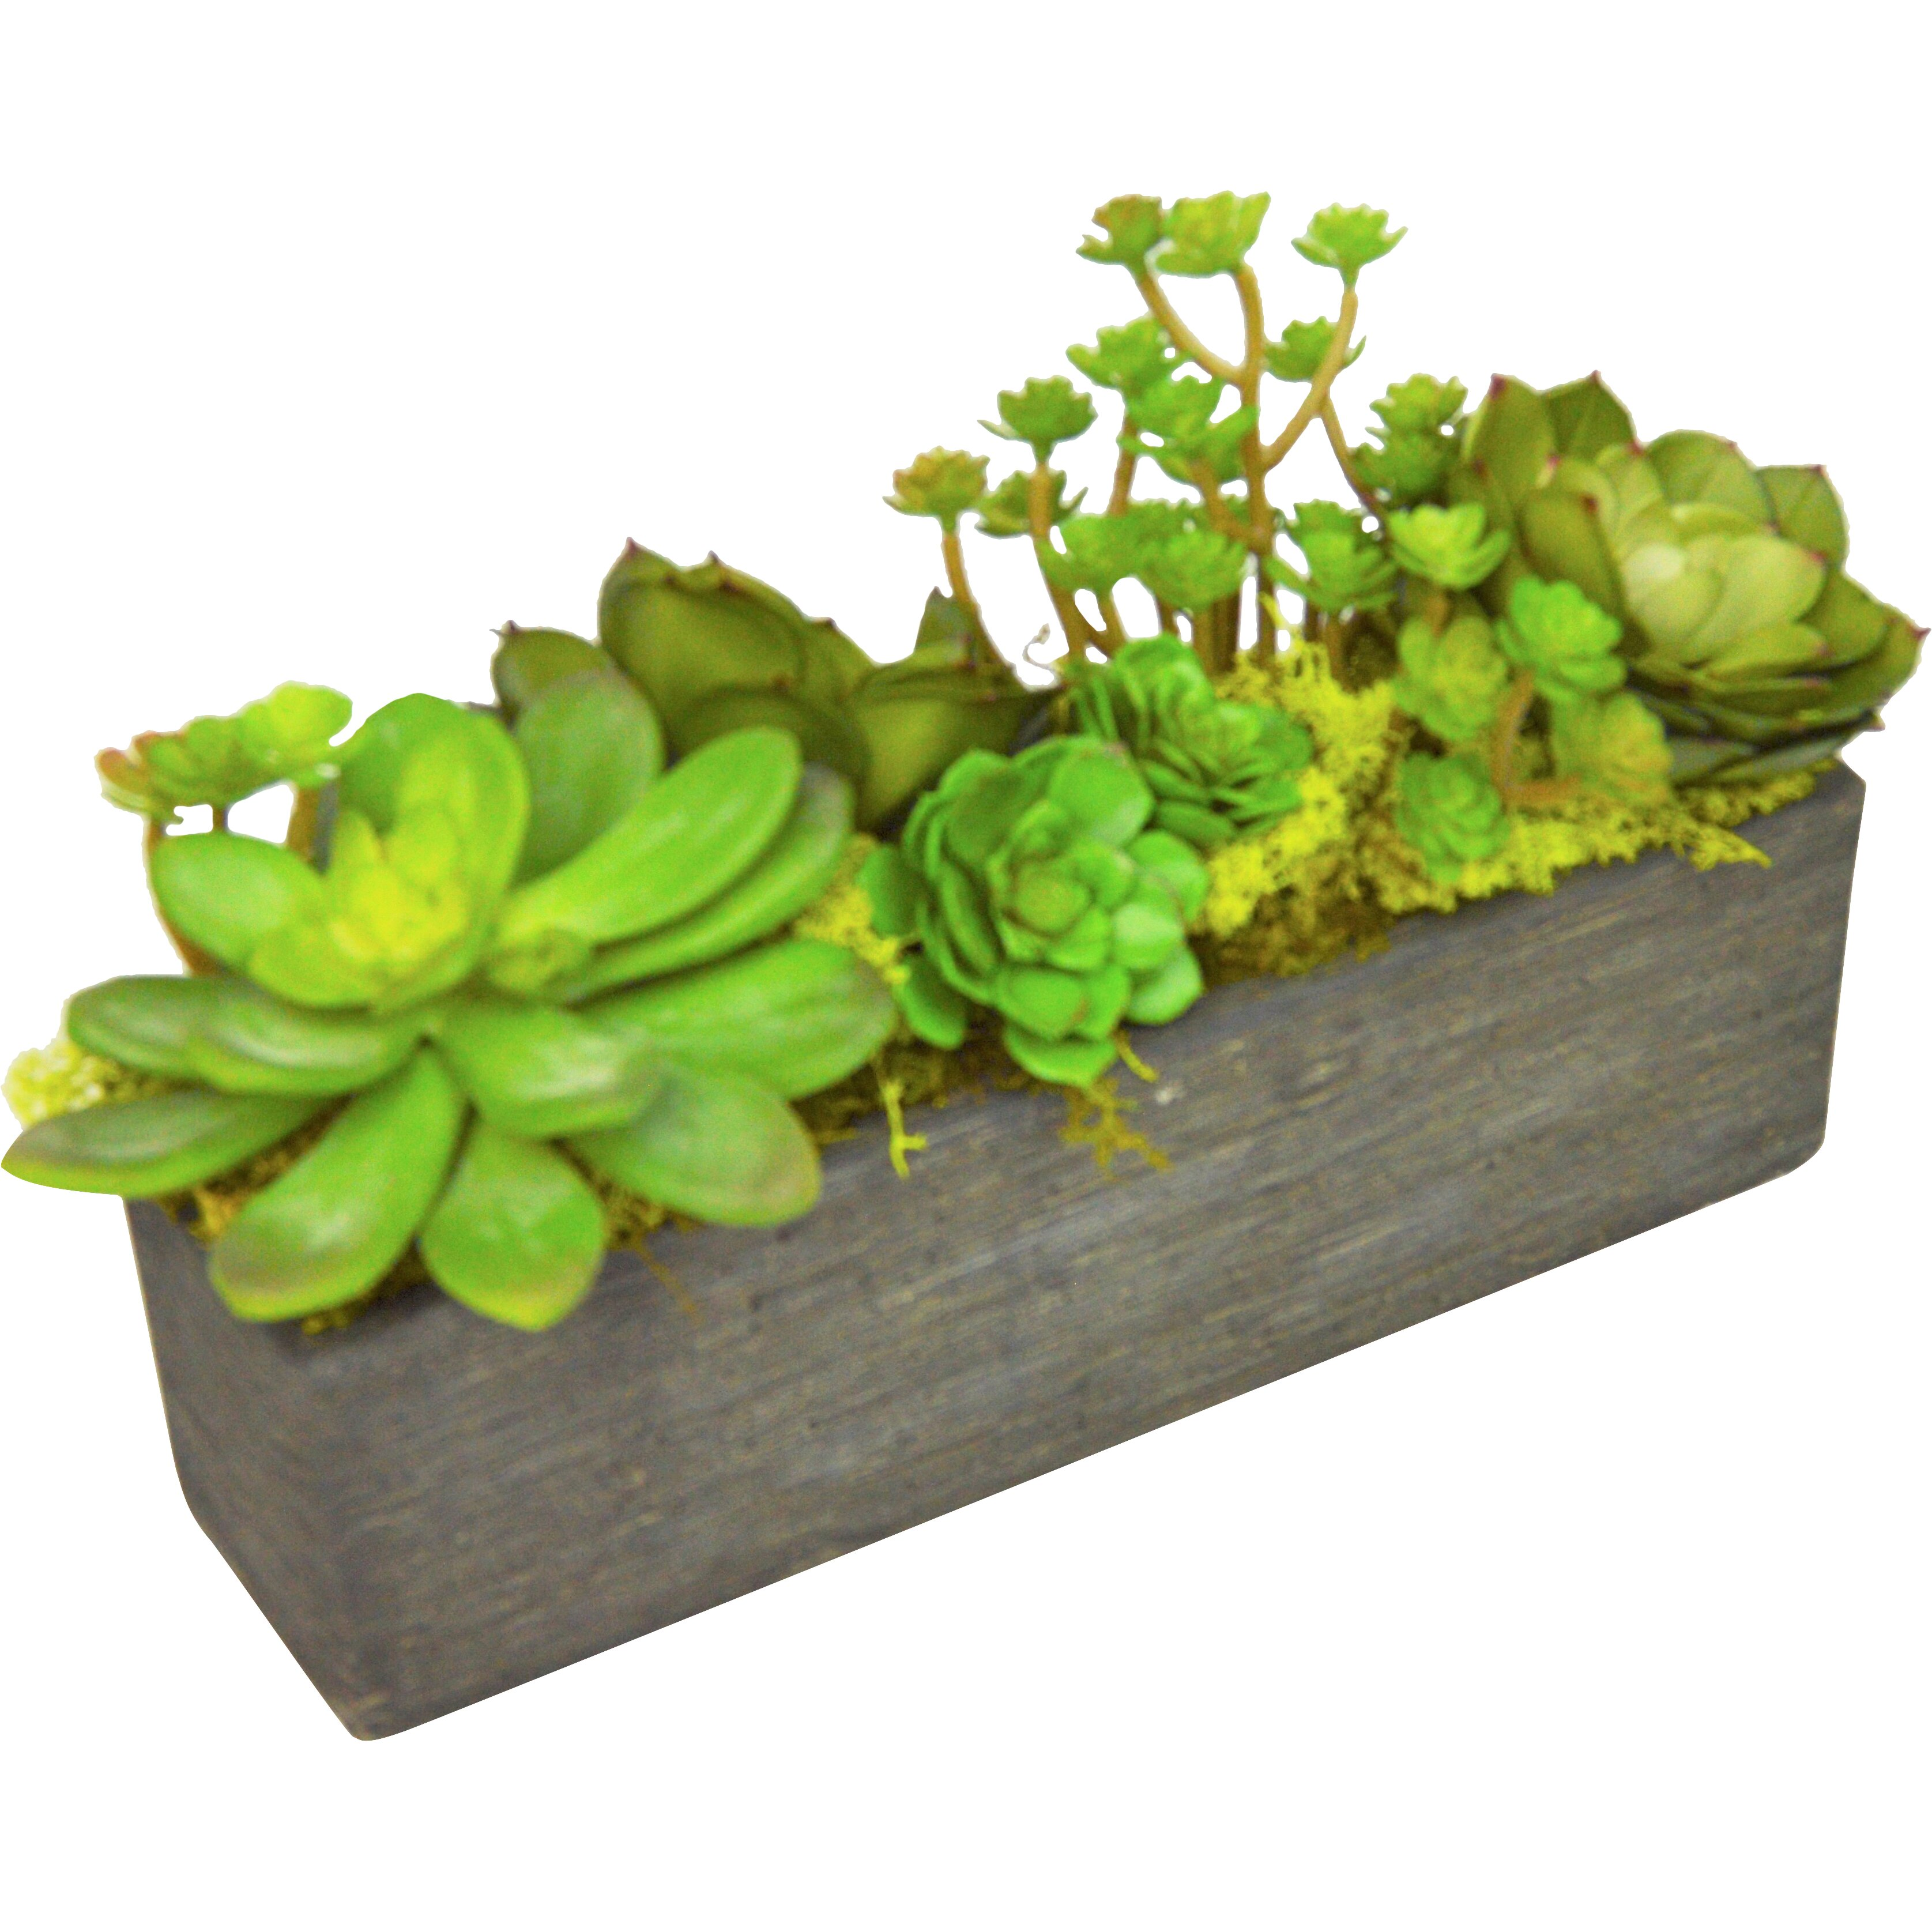 TC Floral Company Succulent Garden in Rectangle Box Reviews